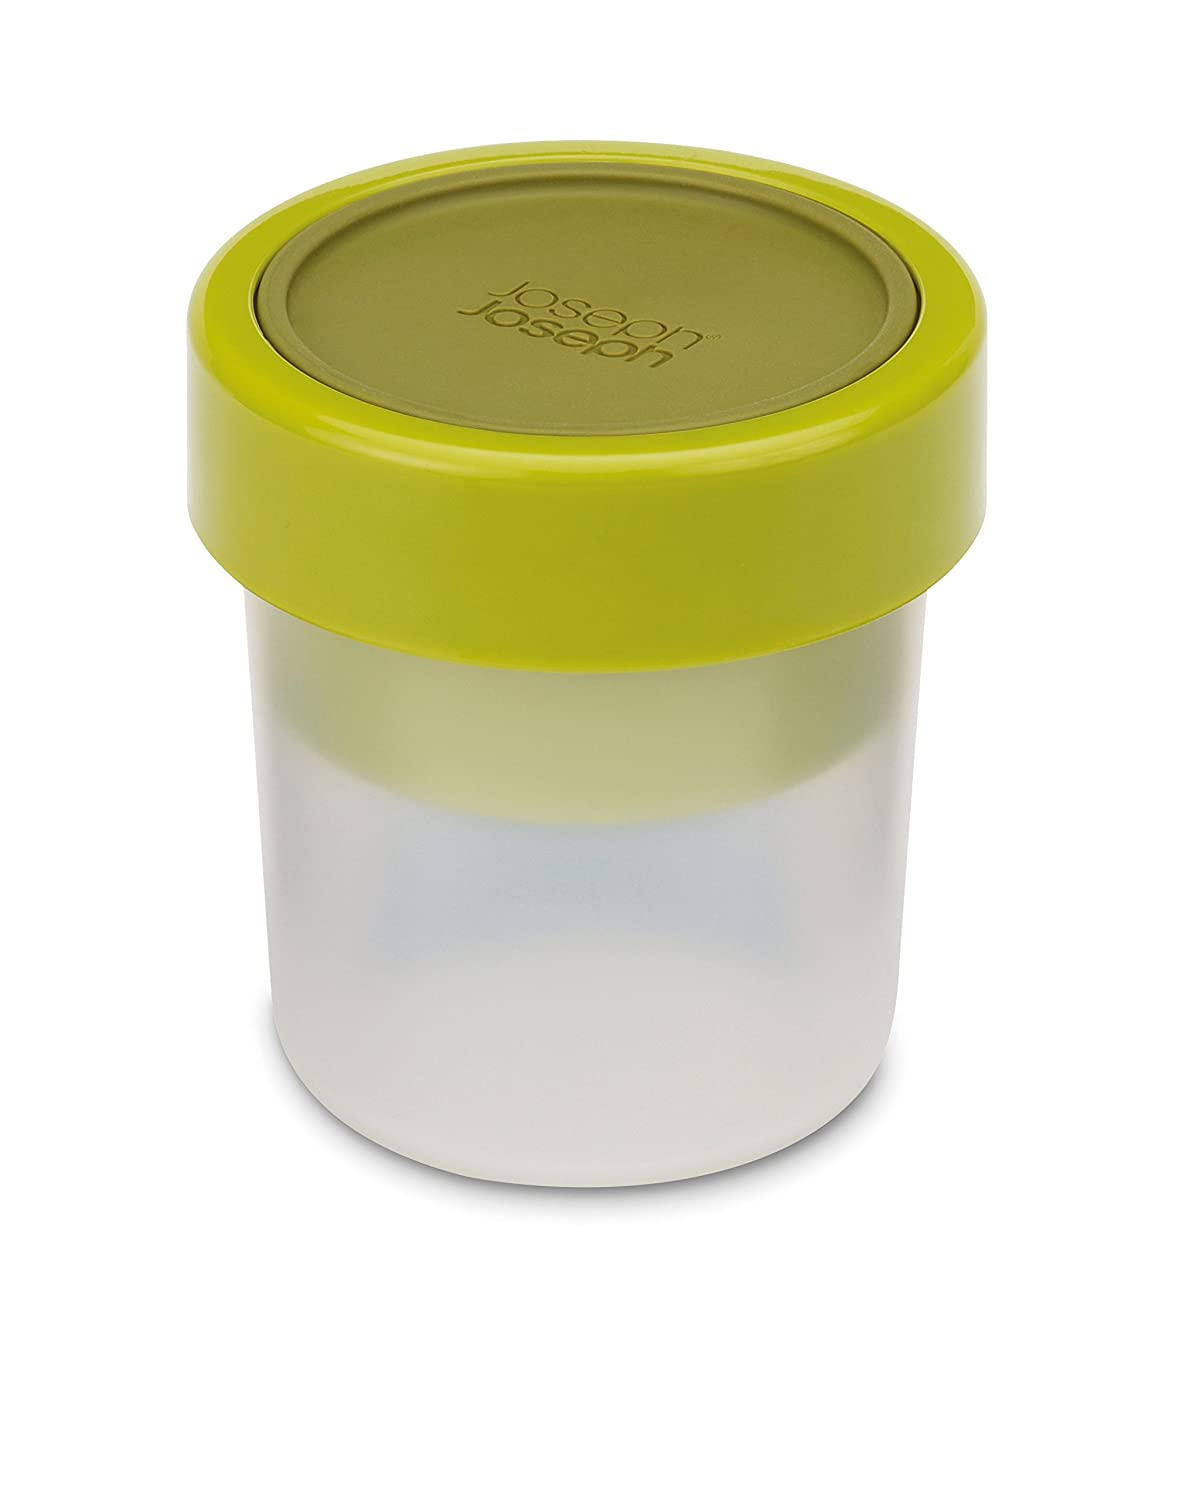 Joseph Joseph 81025 Go Eat Compact 2 In 1 Snack Container, Green by Joseph Joseph